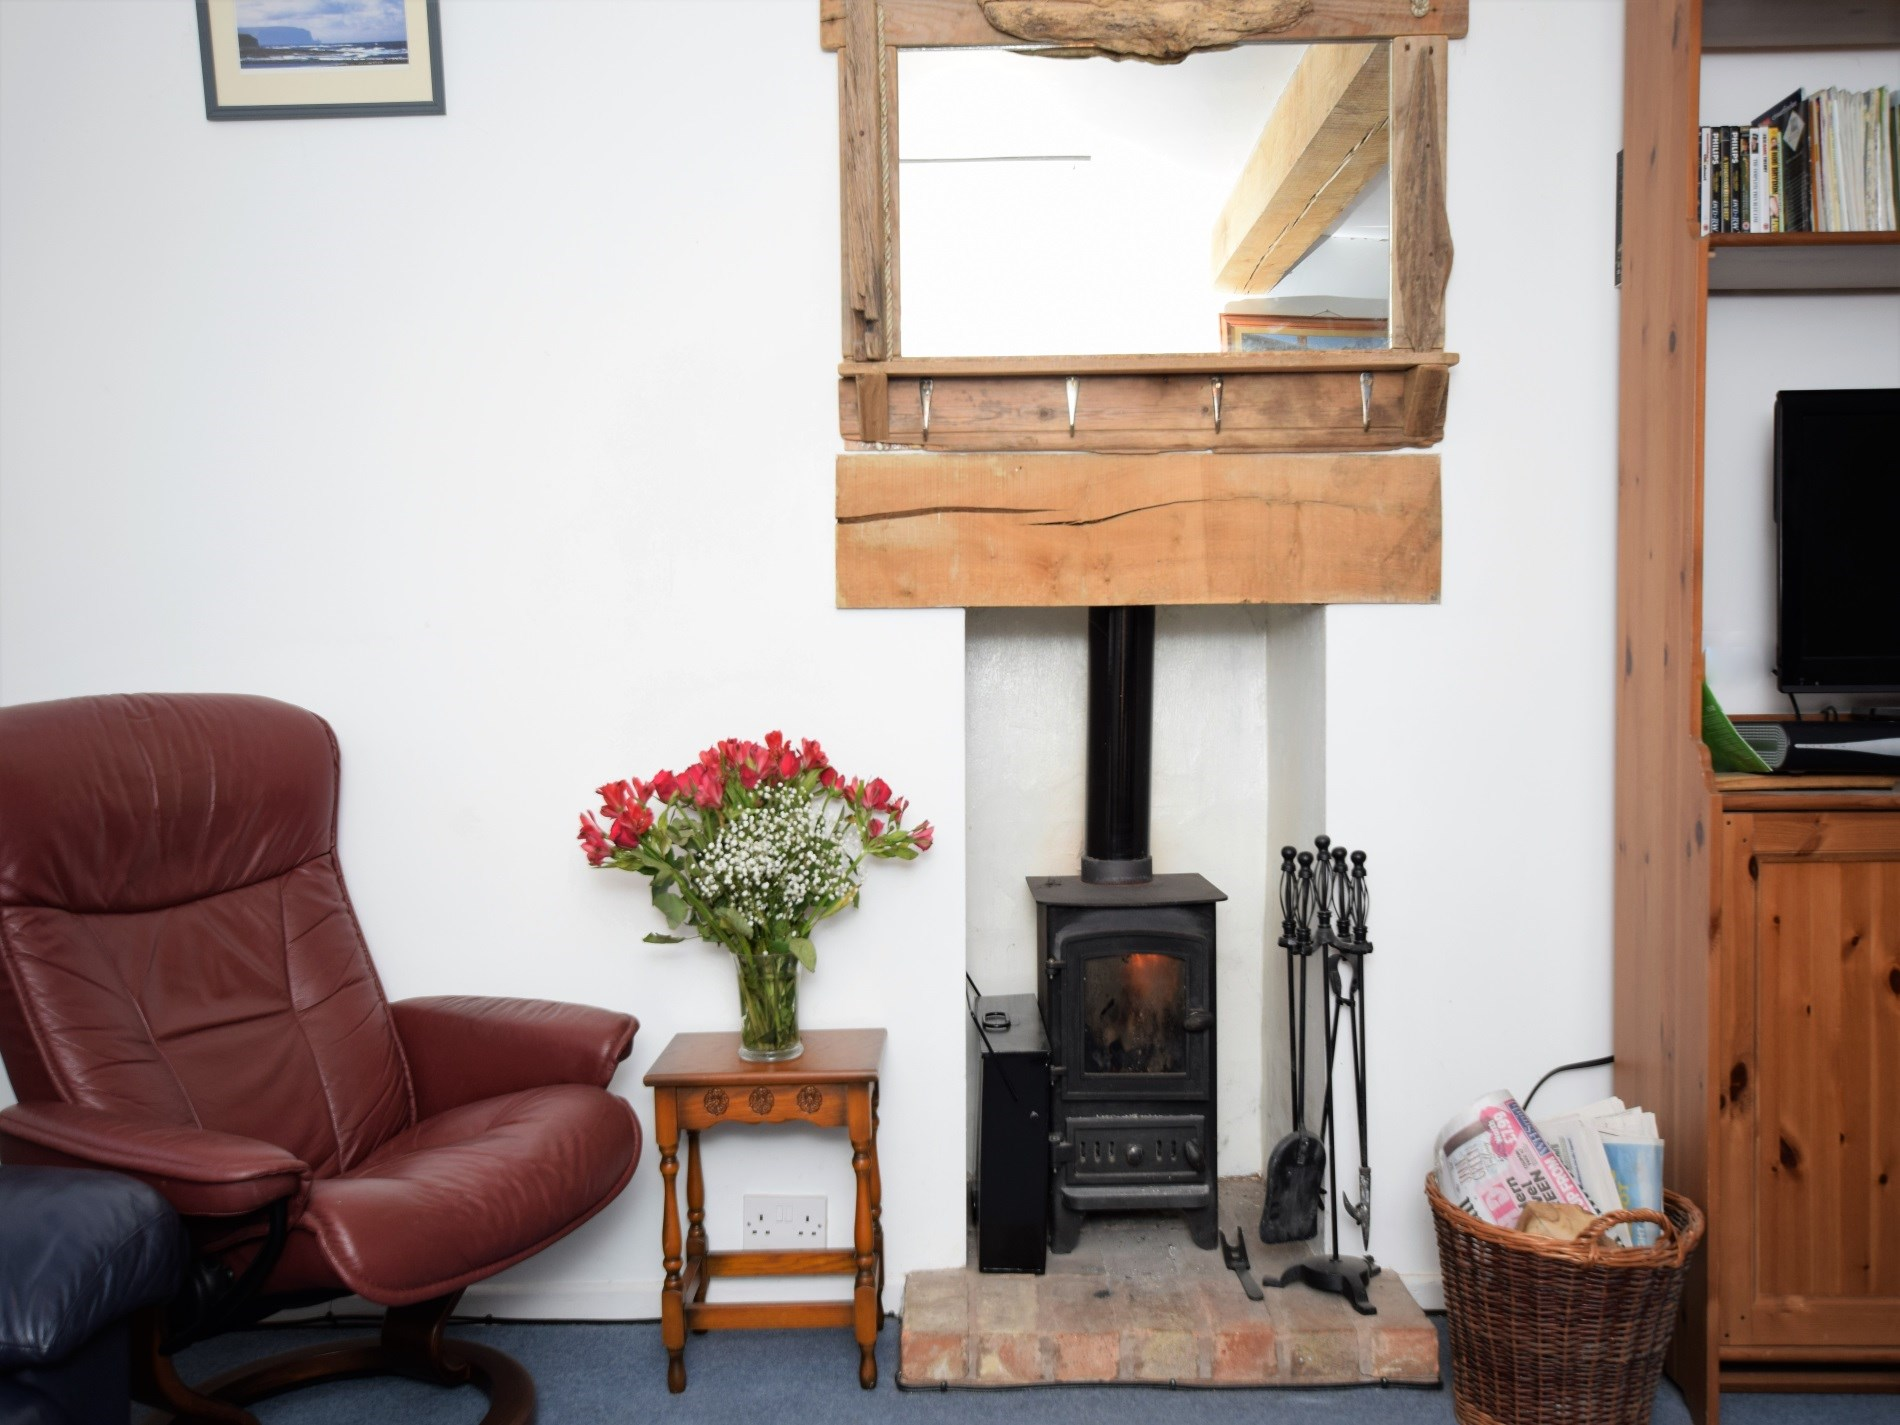 Cosy wood burner for chilly nights